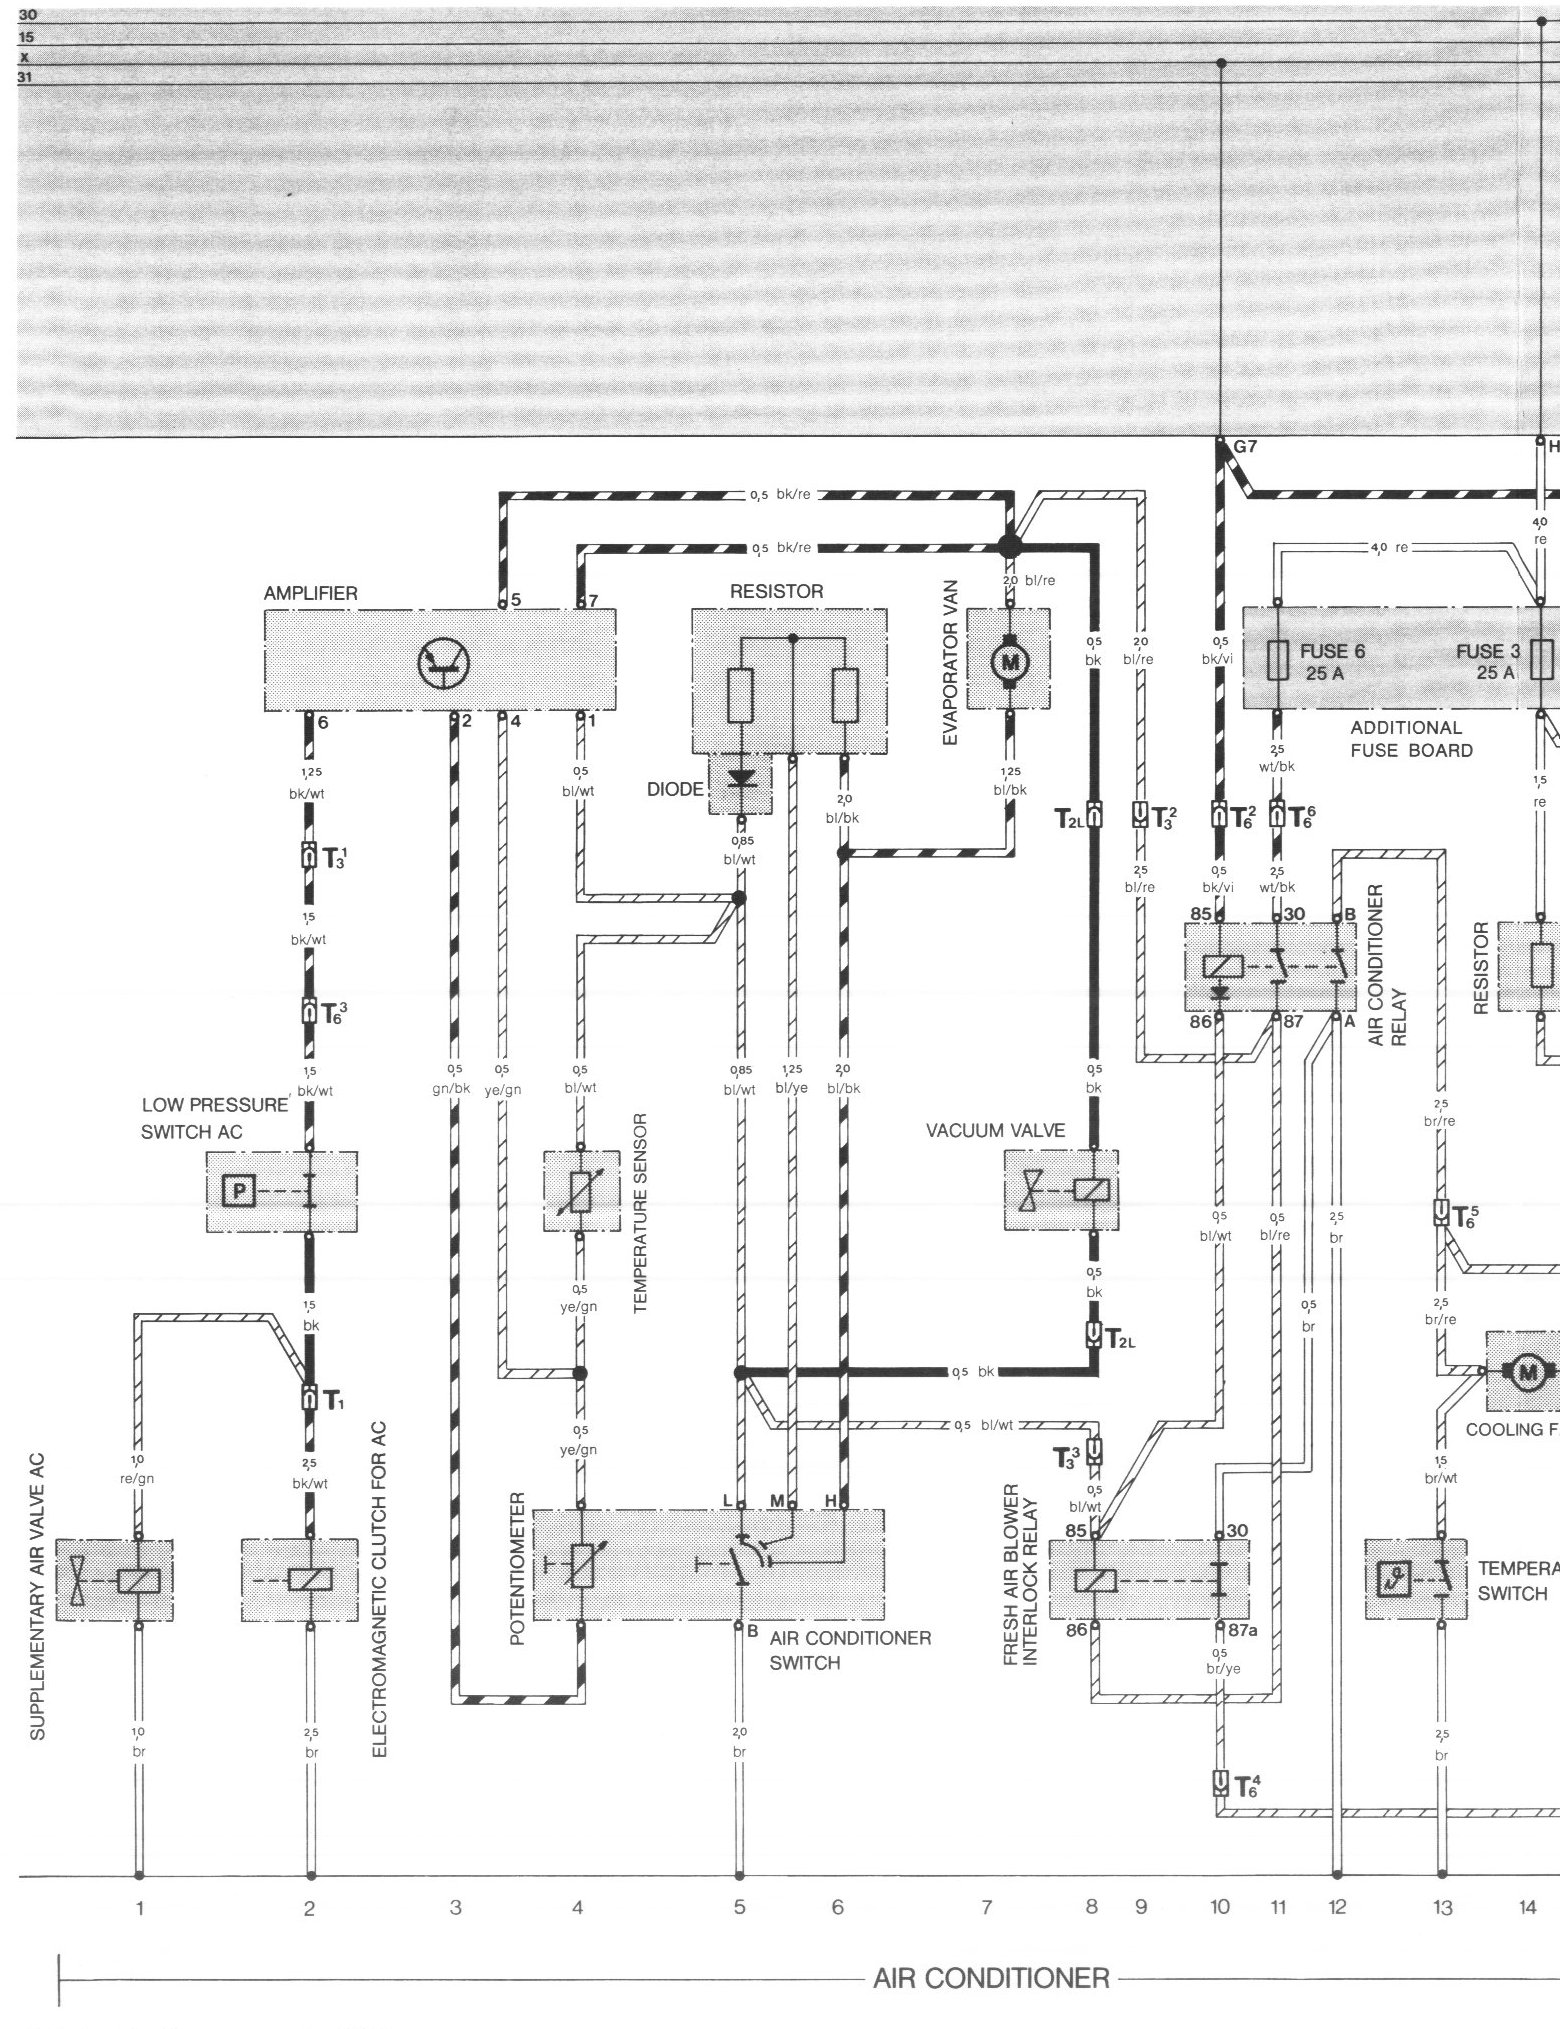 pelican parts porsche 924 944 electrical diagramsa c page 1,